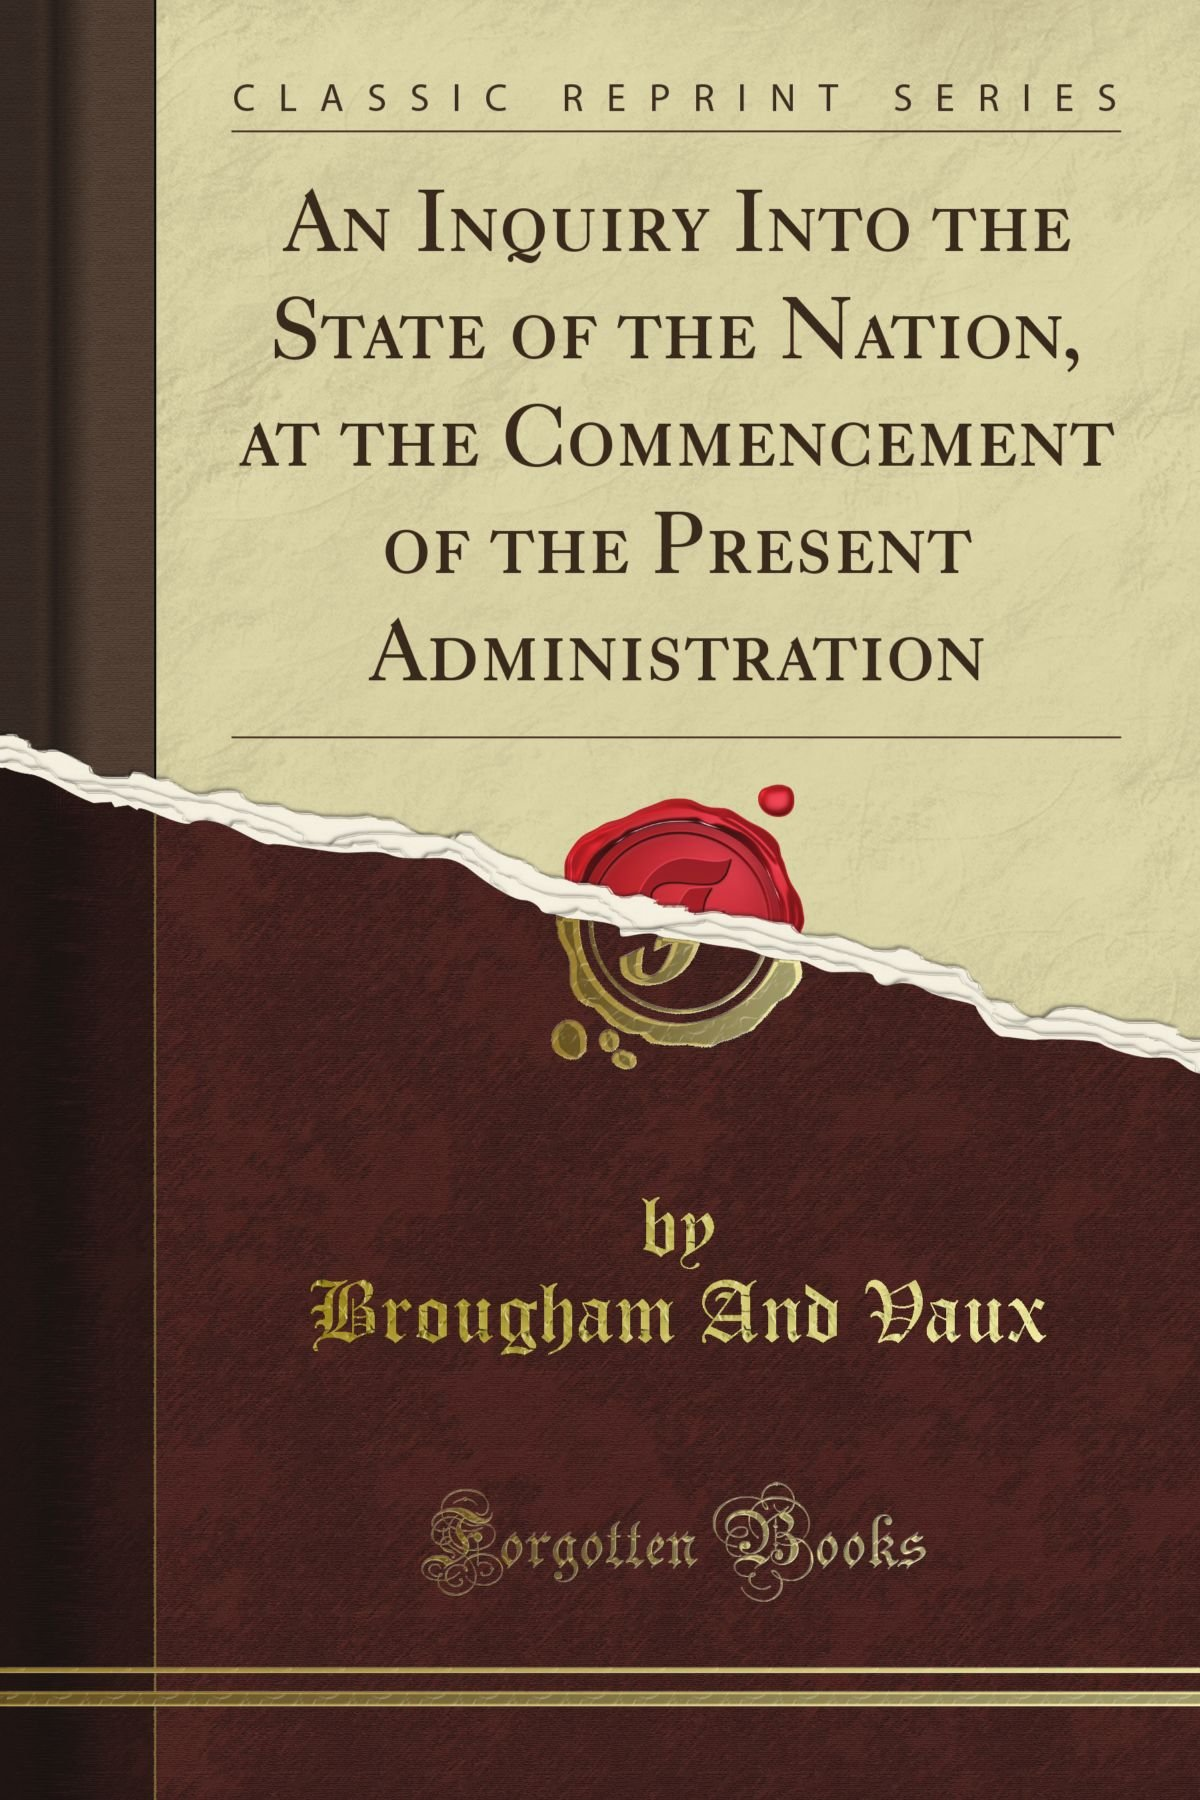 An Inquiry Into the State of the Nation, at the Commencement of the Present Administration (Classic Reprint) pdf epub